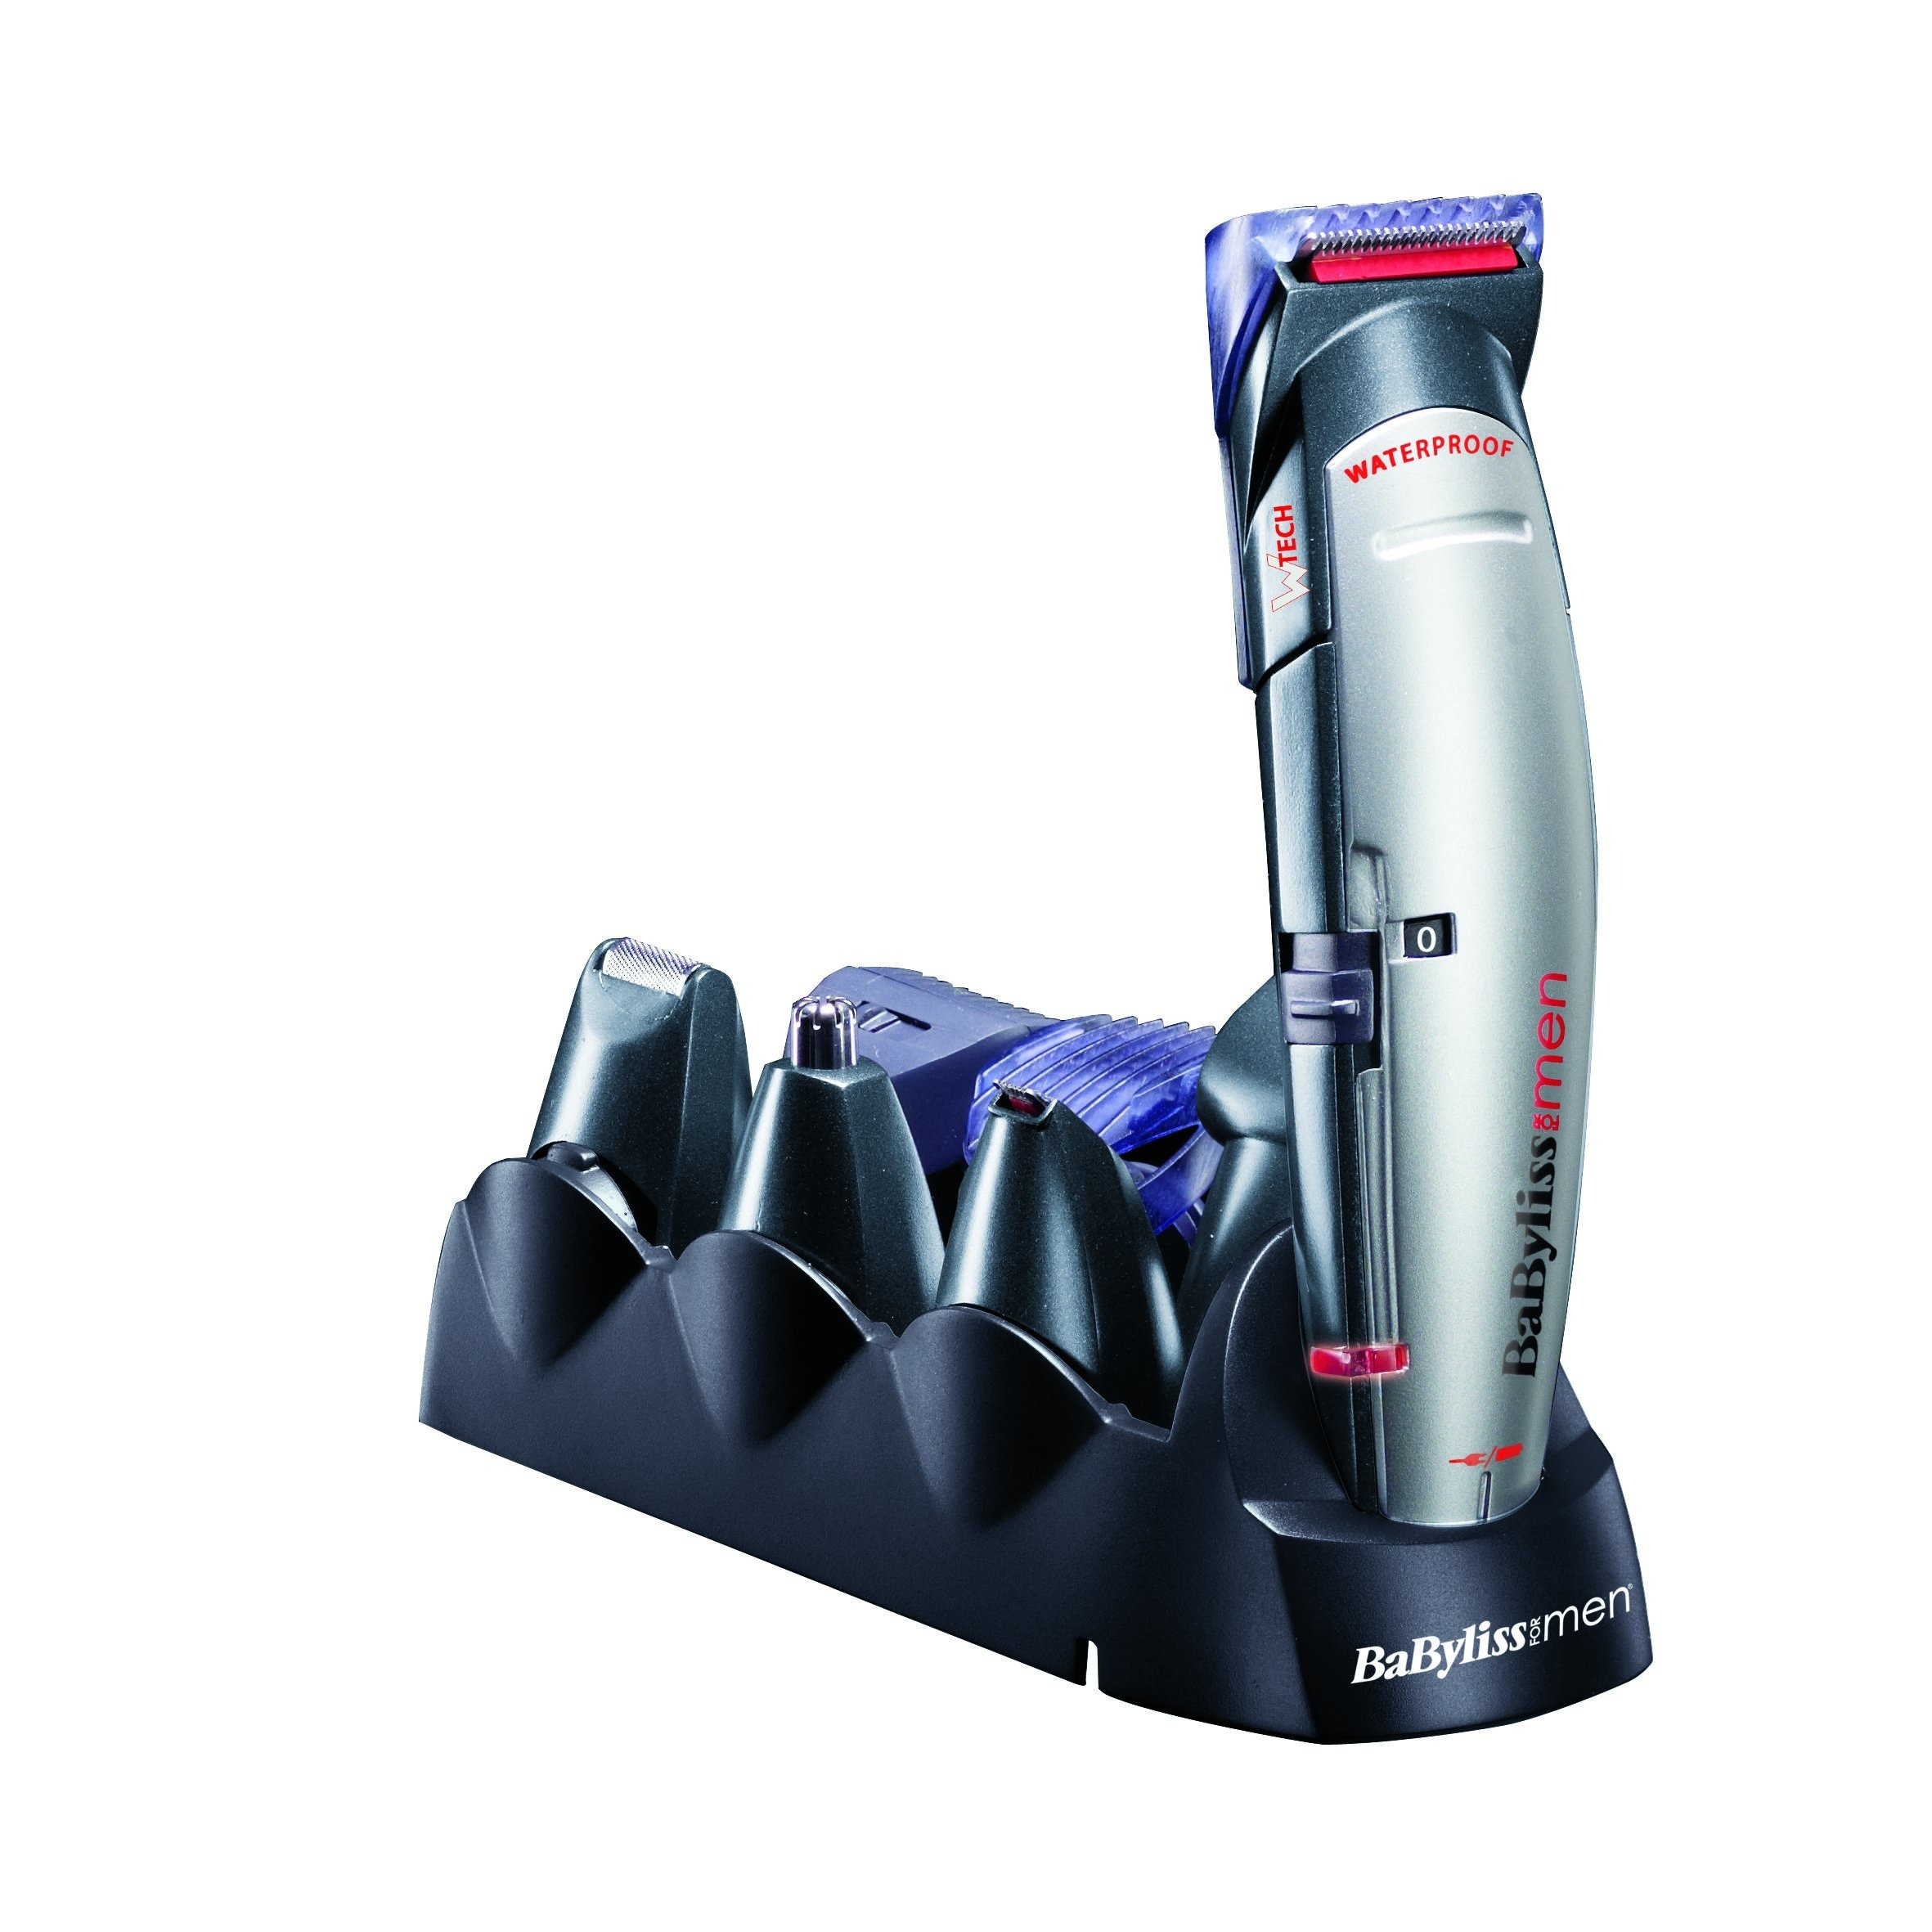 Babyliss bodygroom E837E